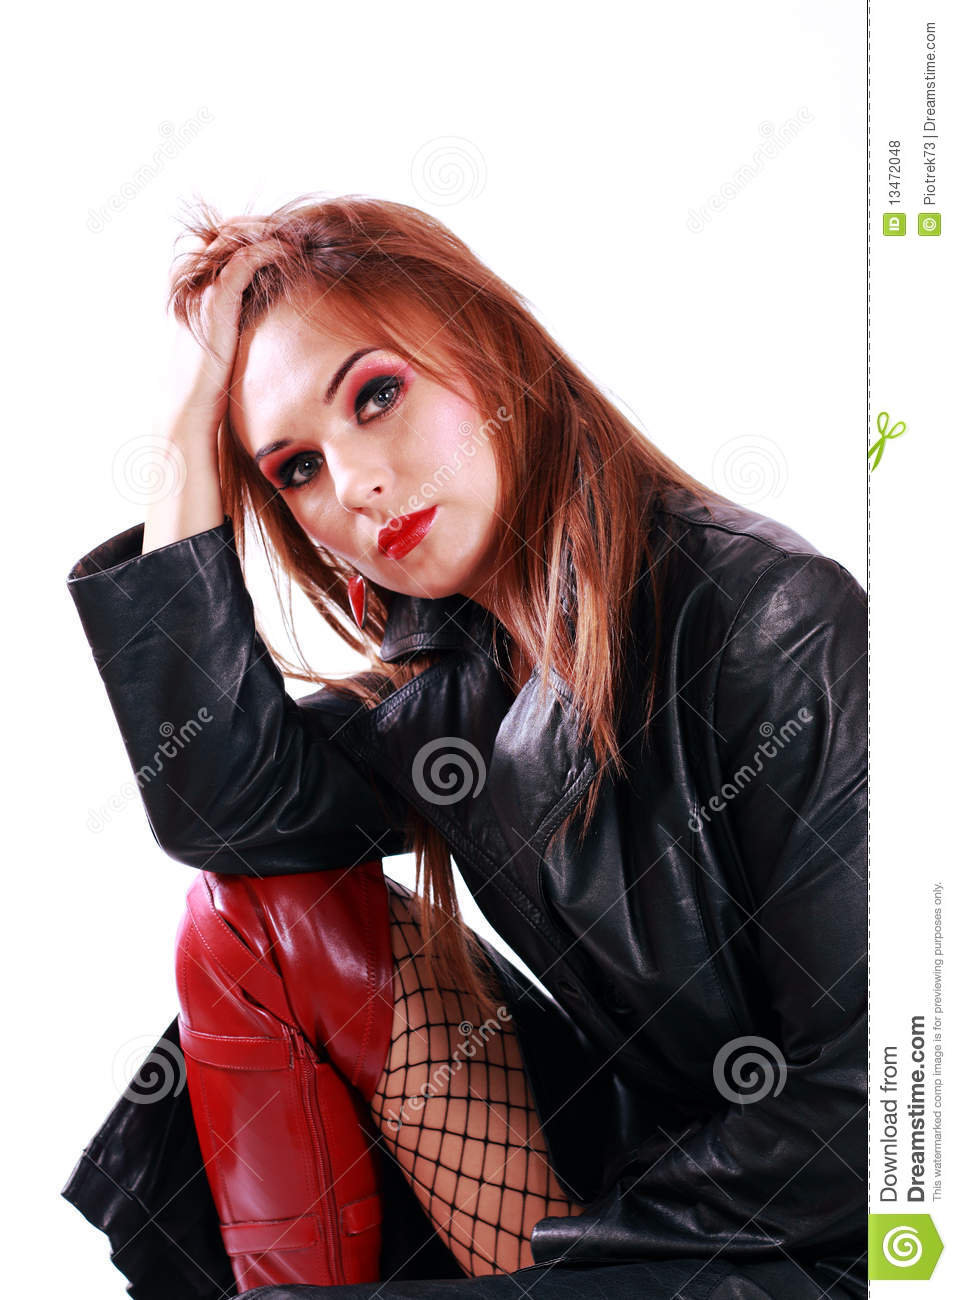 Beautiful Girl Lips Wallpaper Woman In Leather Jacket Royalty Free Stock Photos Image